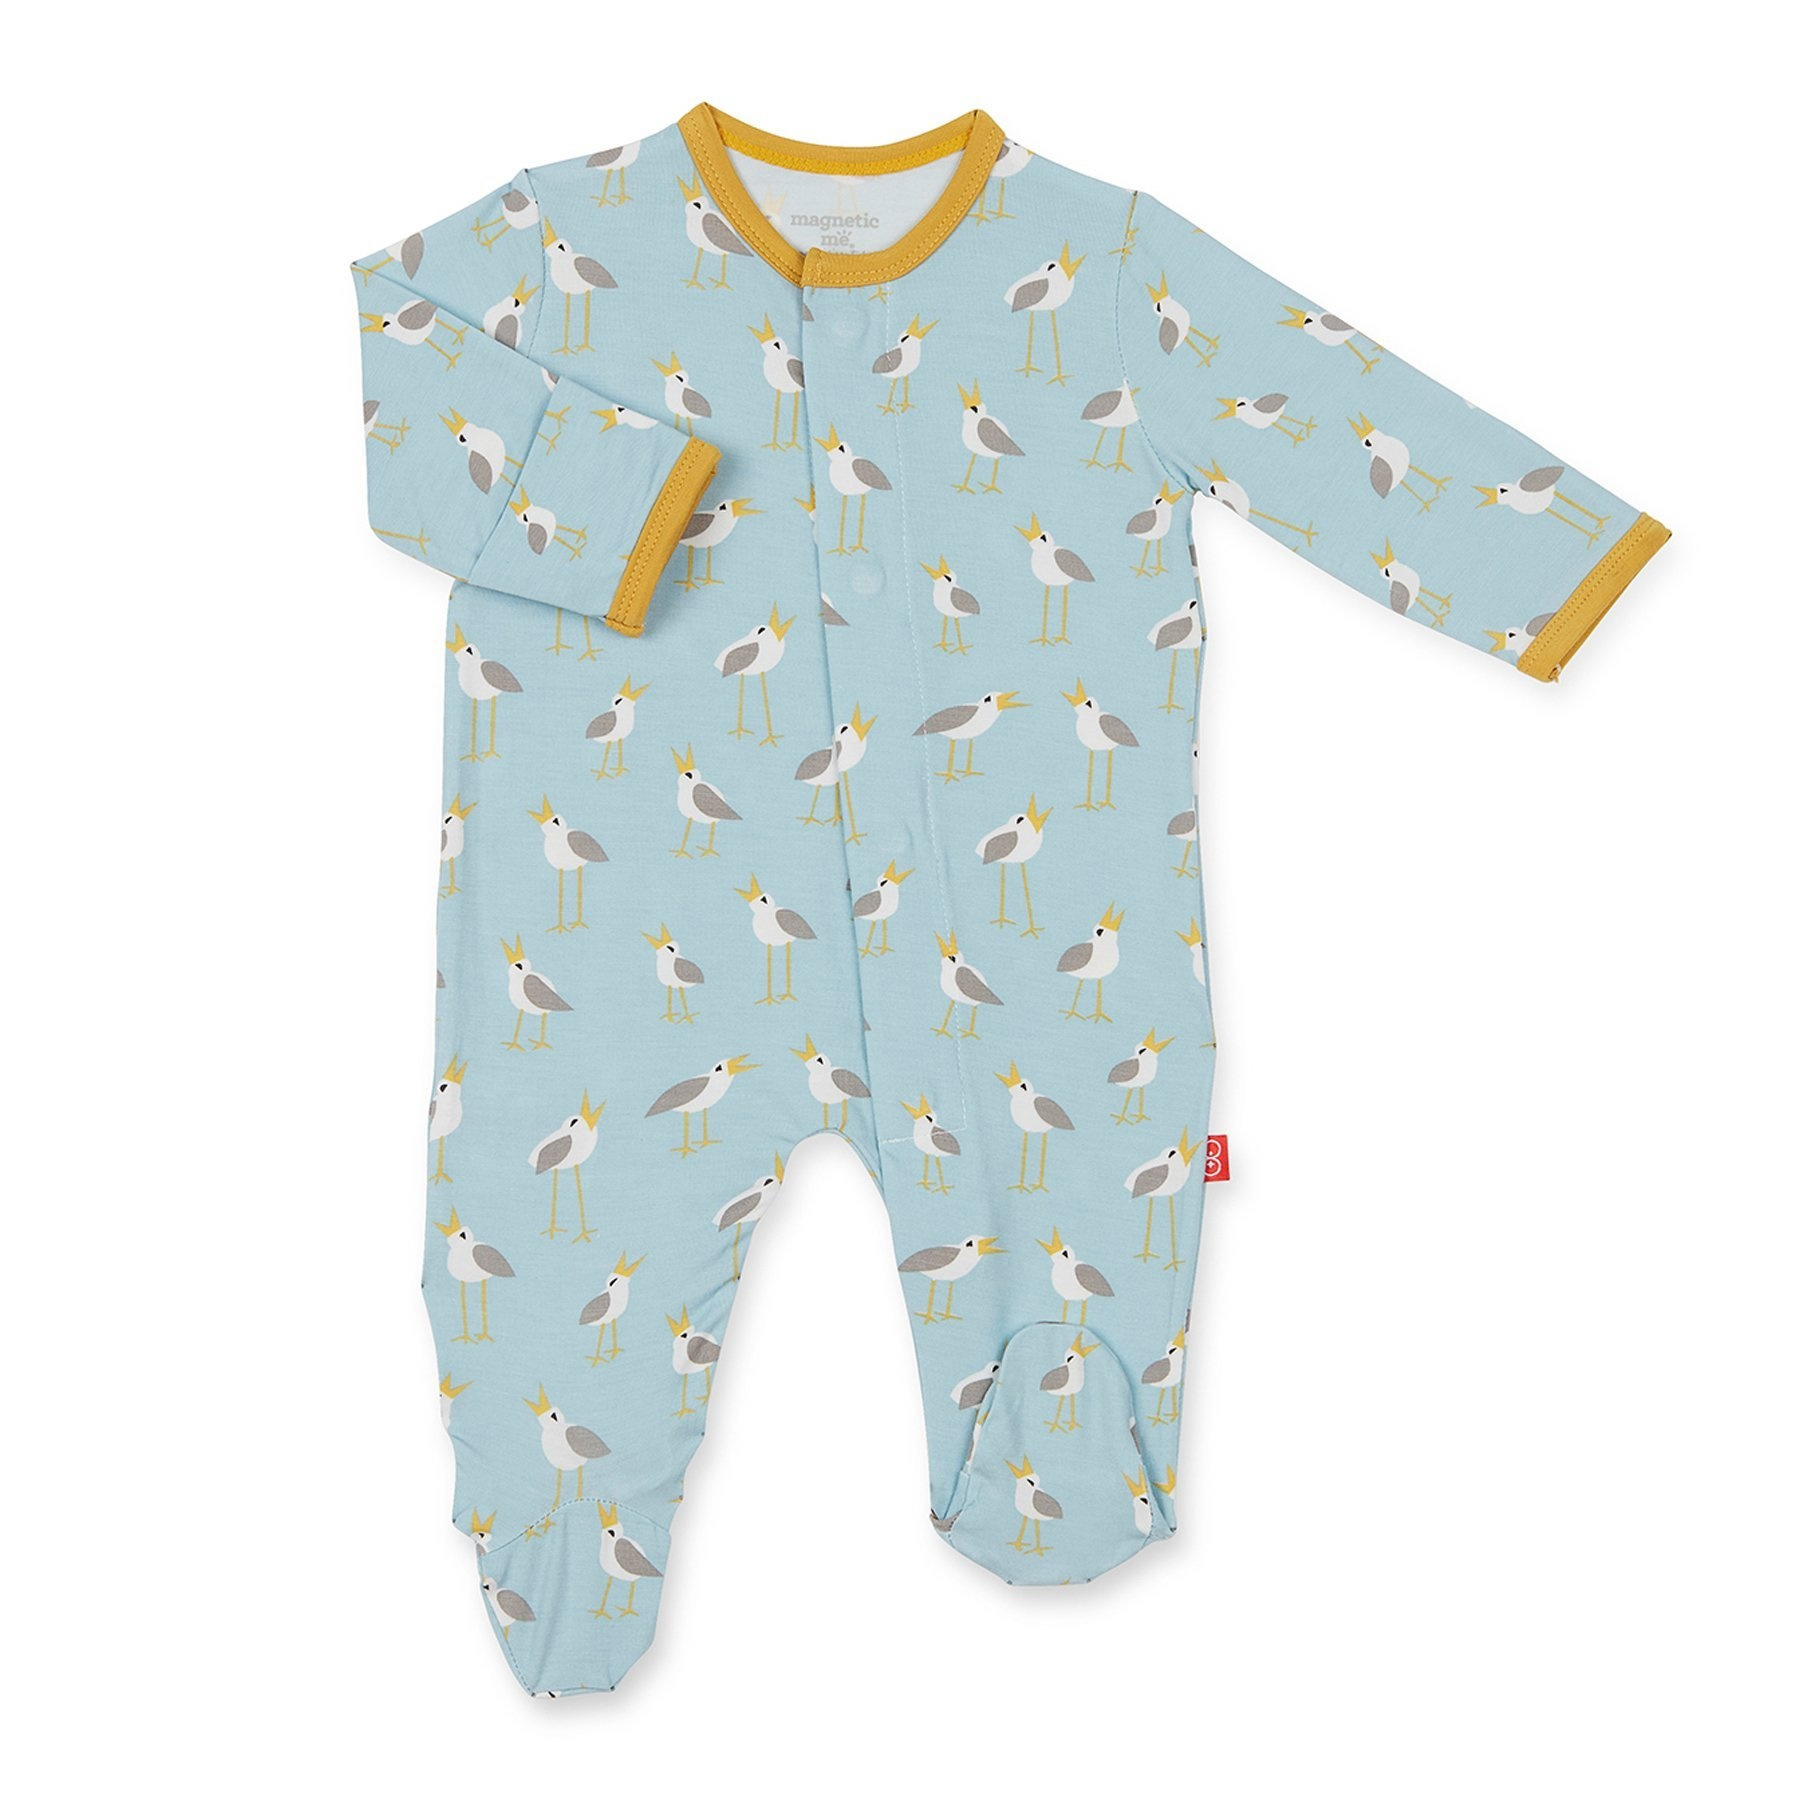 Magnetic Me Magnetic Me Modal Footie - Blue Plovers